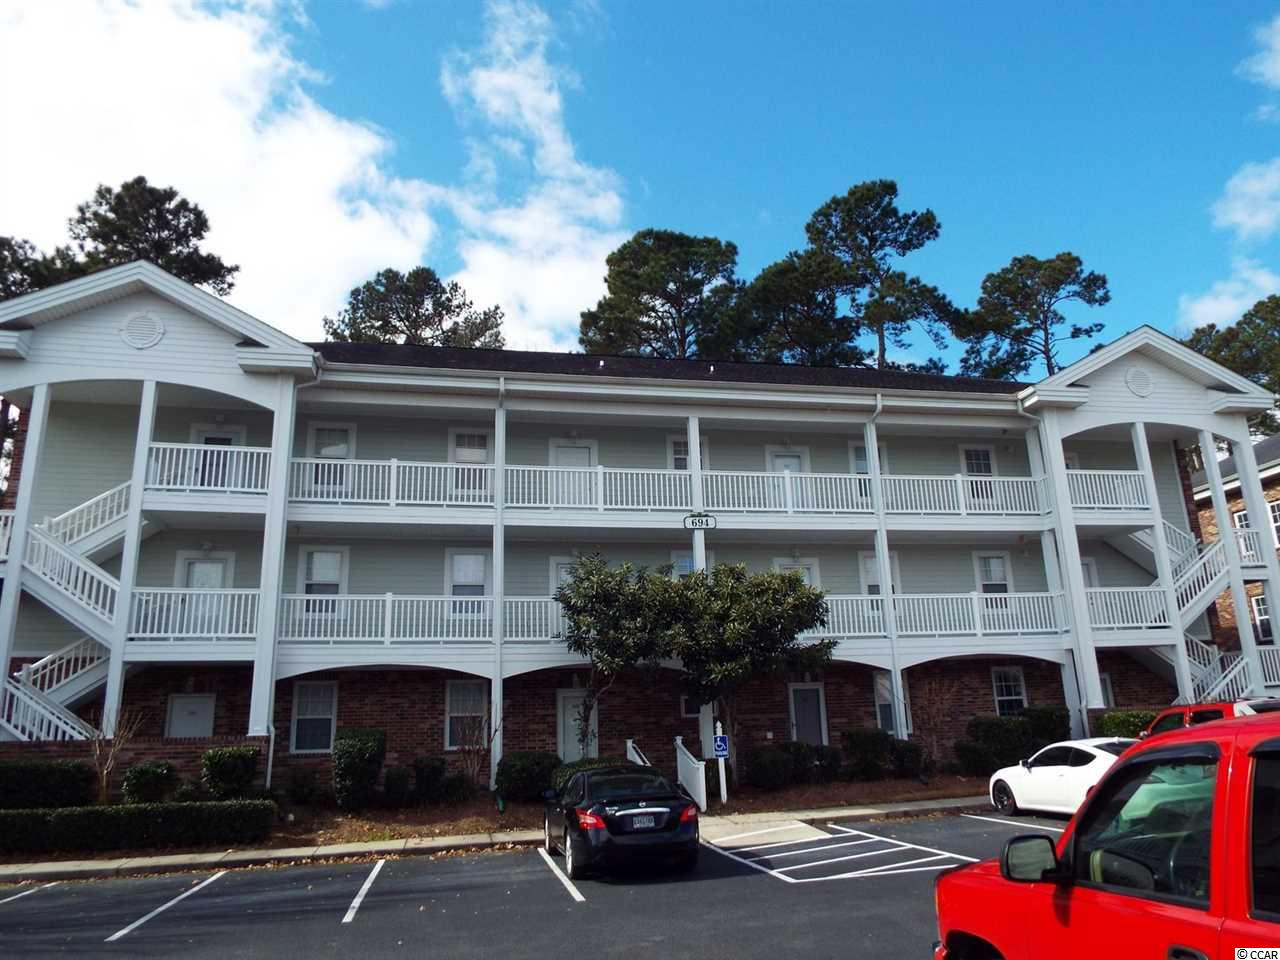 Condo Sold At Riverwalk In Myrtle Beach South Carolina Unit Listing Mls Number 1603038